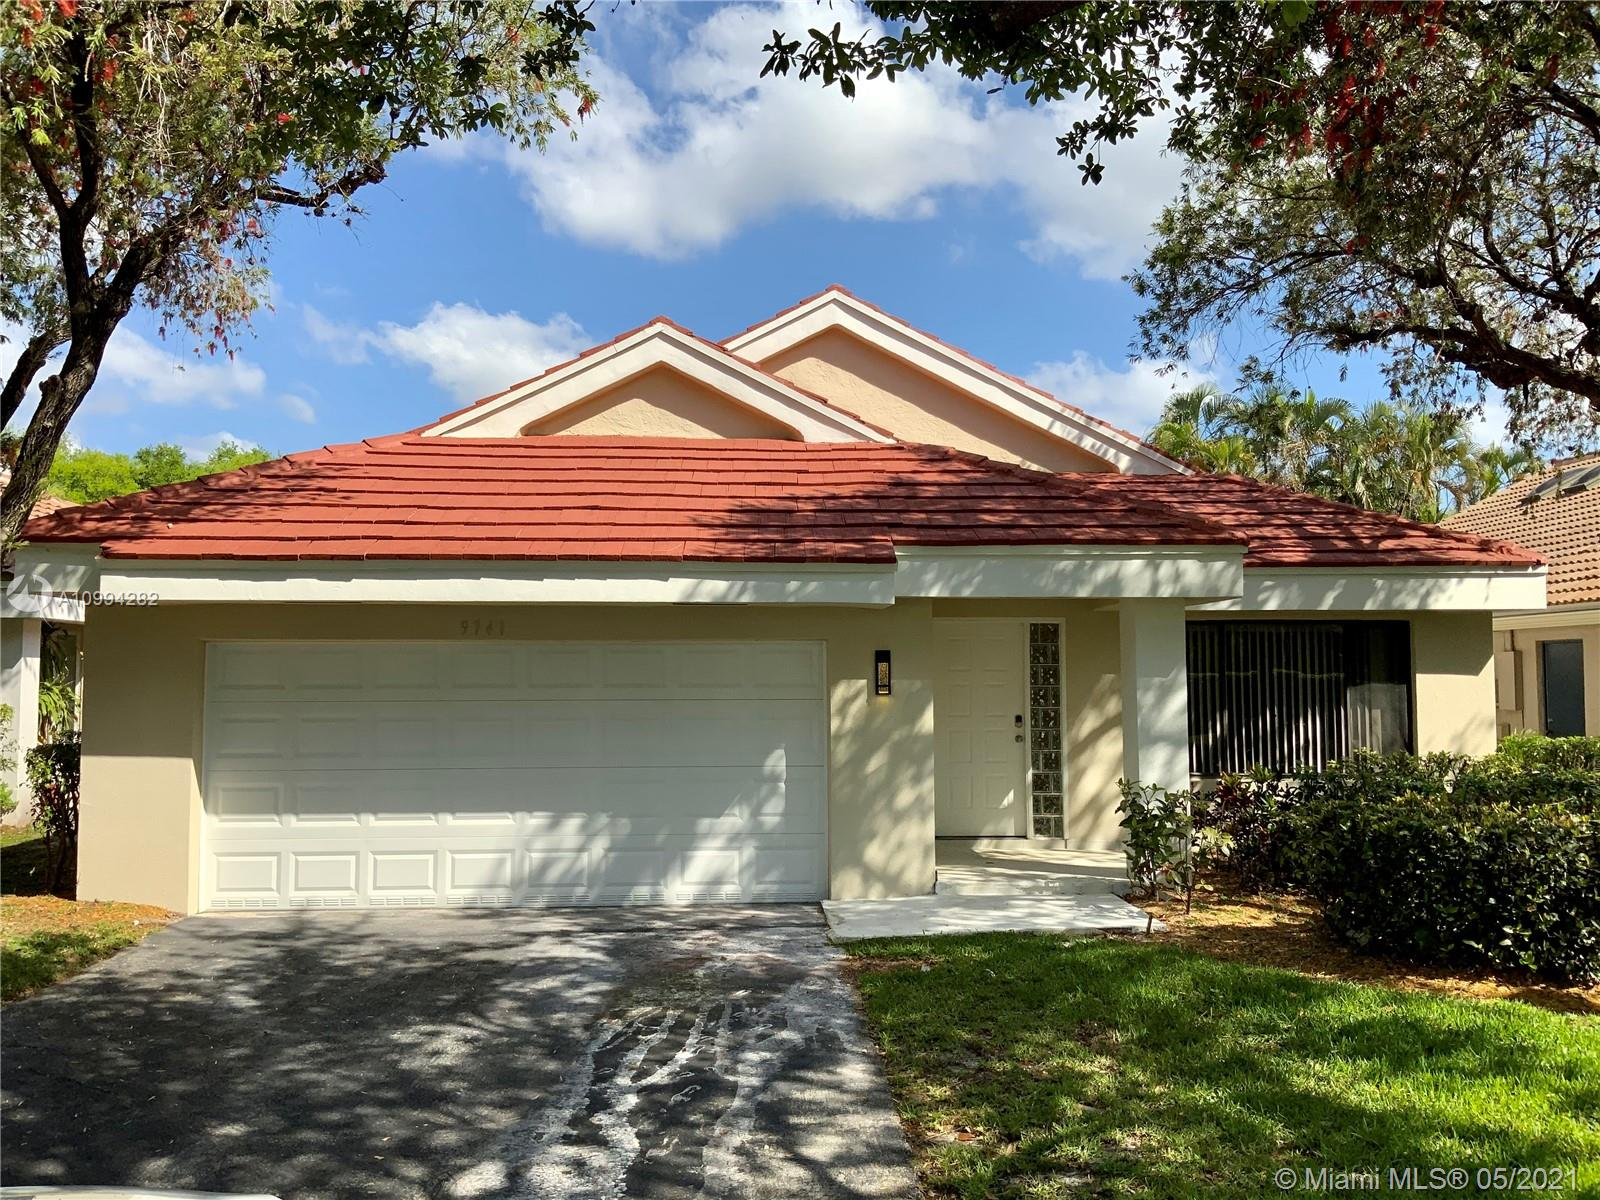 Beautiful 3/2 waterfront home in a nice and quite neighborhood, with a 2 car garage. It offers a remodeled Kitchen, 2 walk in closets, double sink in the master room. Great for a investor or a family. AT THE MOMENT THE PROPERTY IS NOT AVAILABLE FOR SHOWINGS.